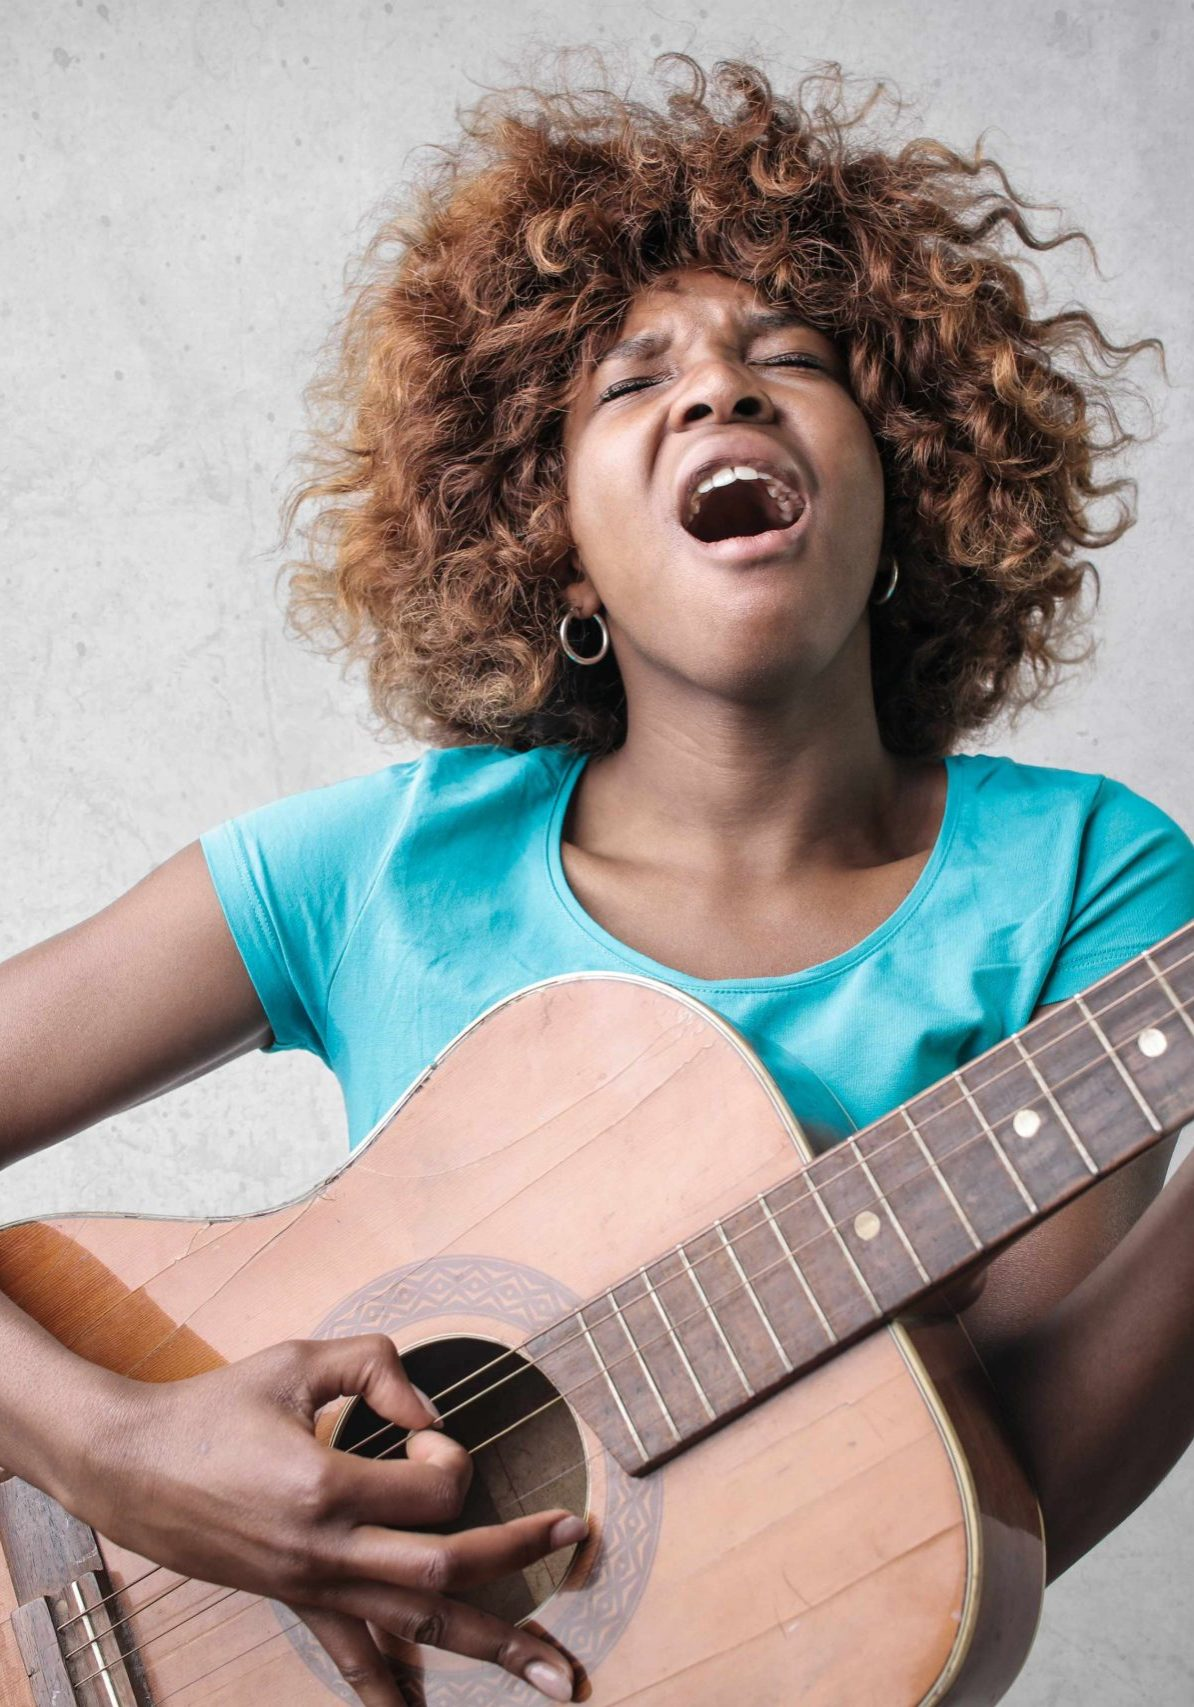 singing with guitar_small